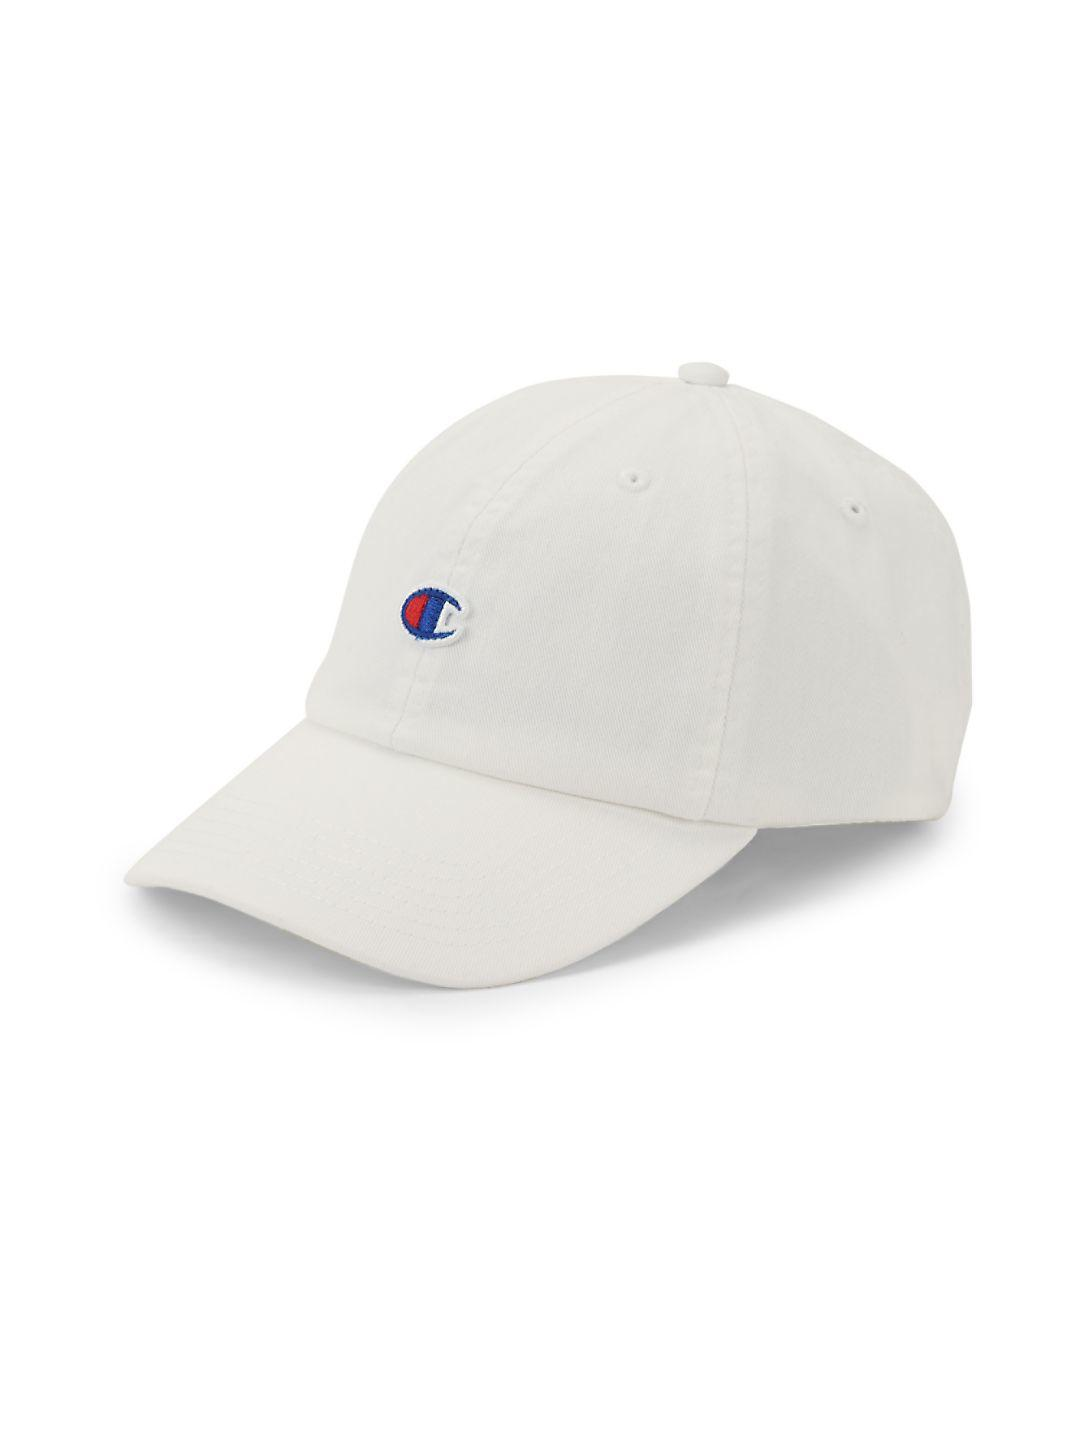 42f9c323482 Lyst - Champion Our Father Dad Cotton Baseball Cap in White for Men